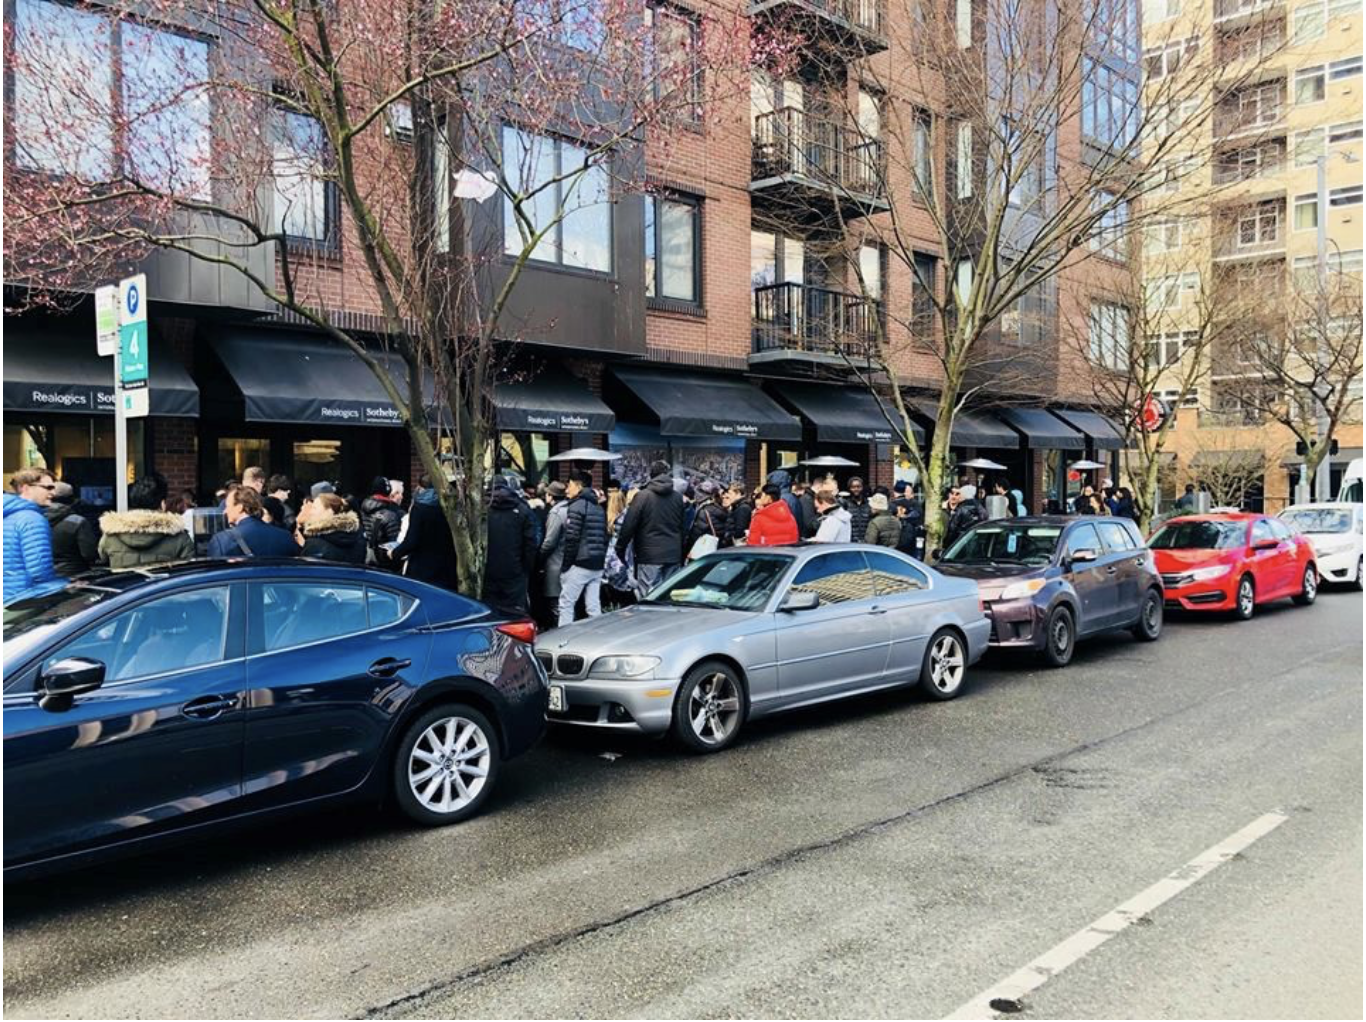 PICTURED ABOVE: The KODA Condominium development generated a line of prospective buyers that eagerly awaited the release of 203 homes for reservation on February 24th, 2018.